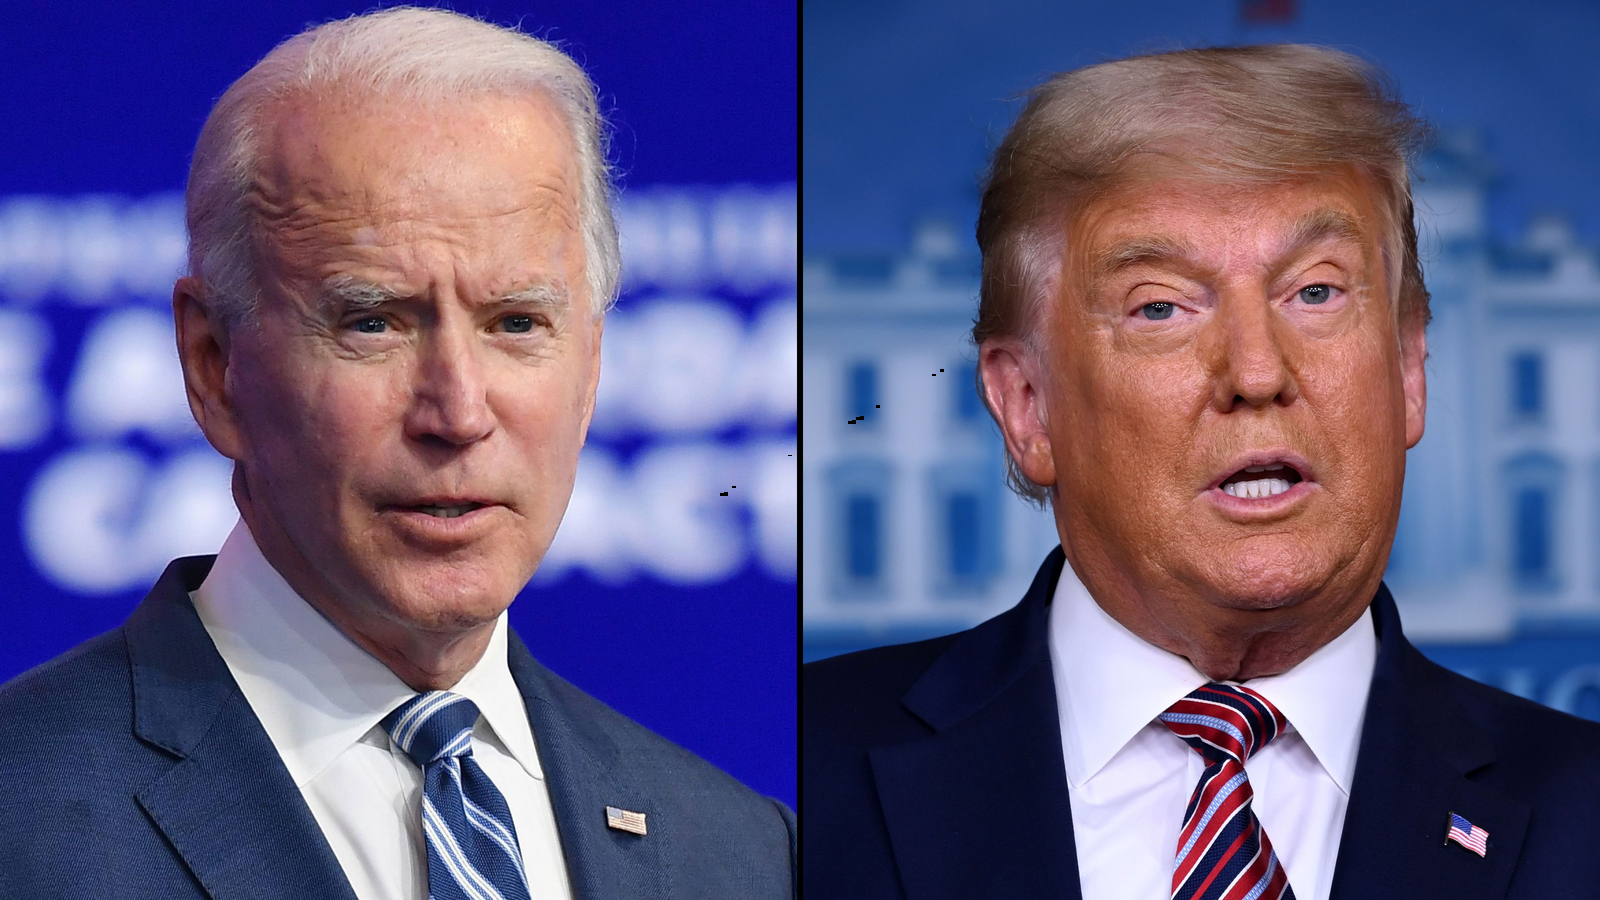 White House has signed off on Joe Biden getting the President's Daily Brief